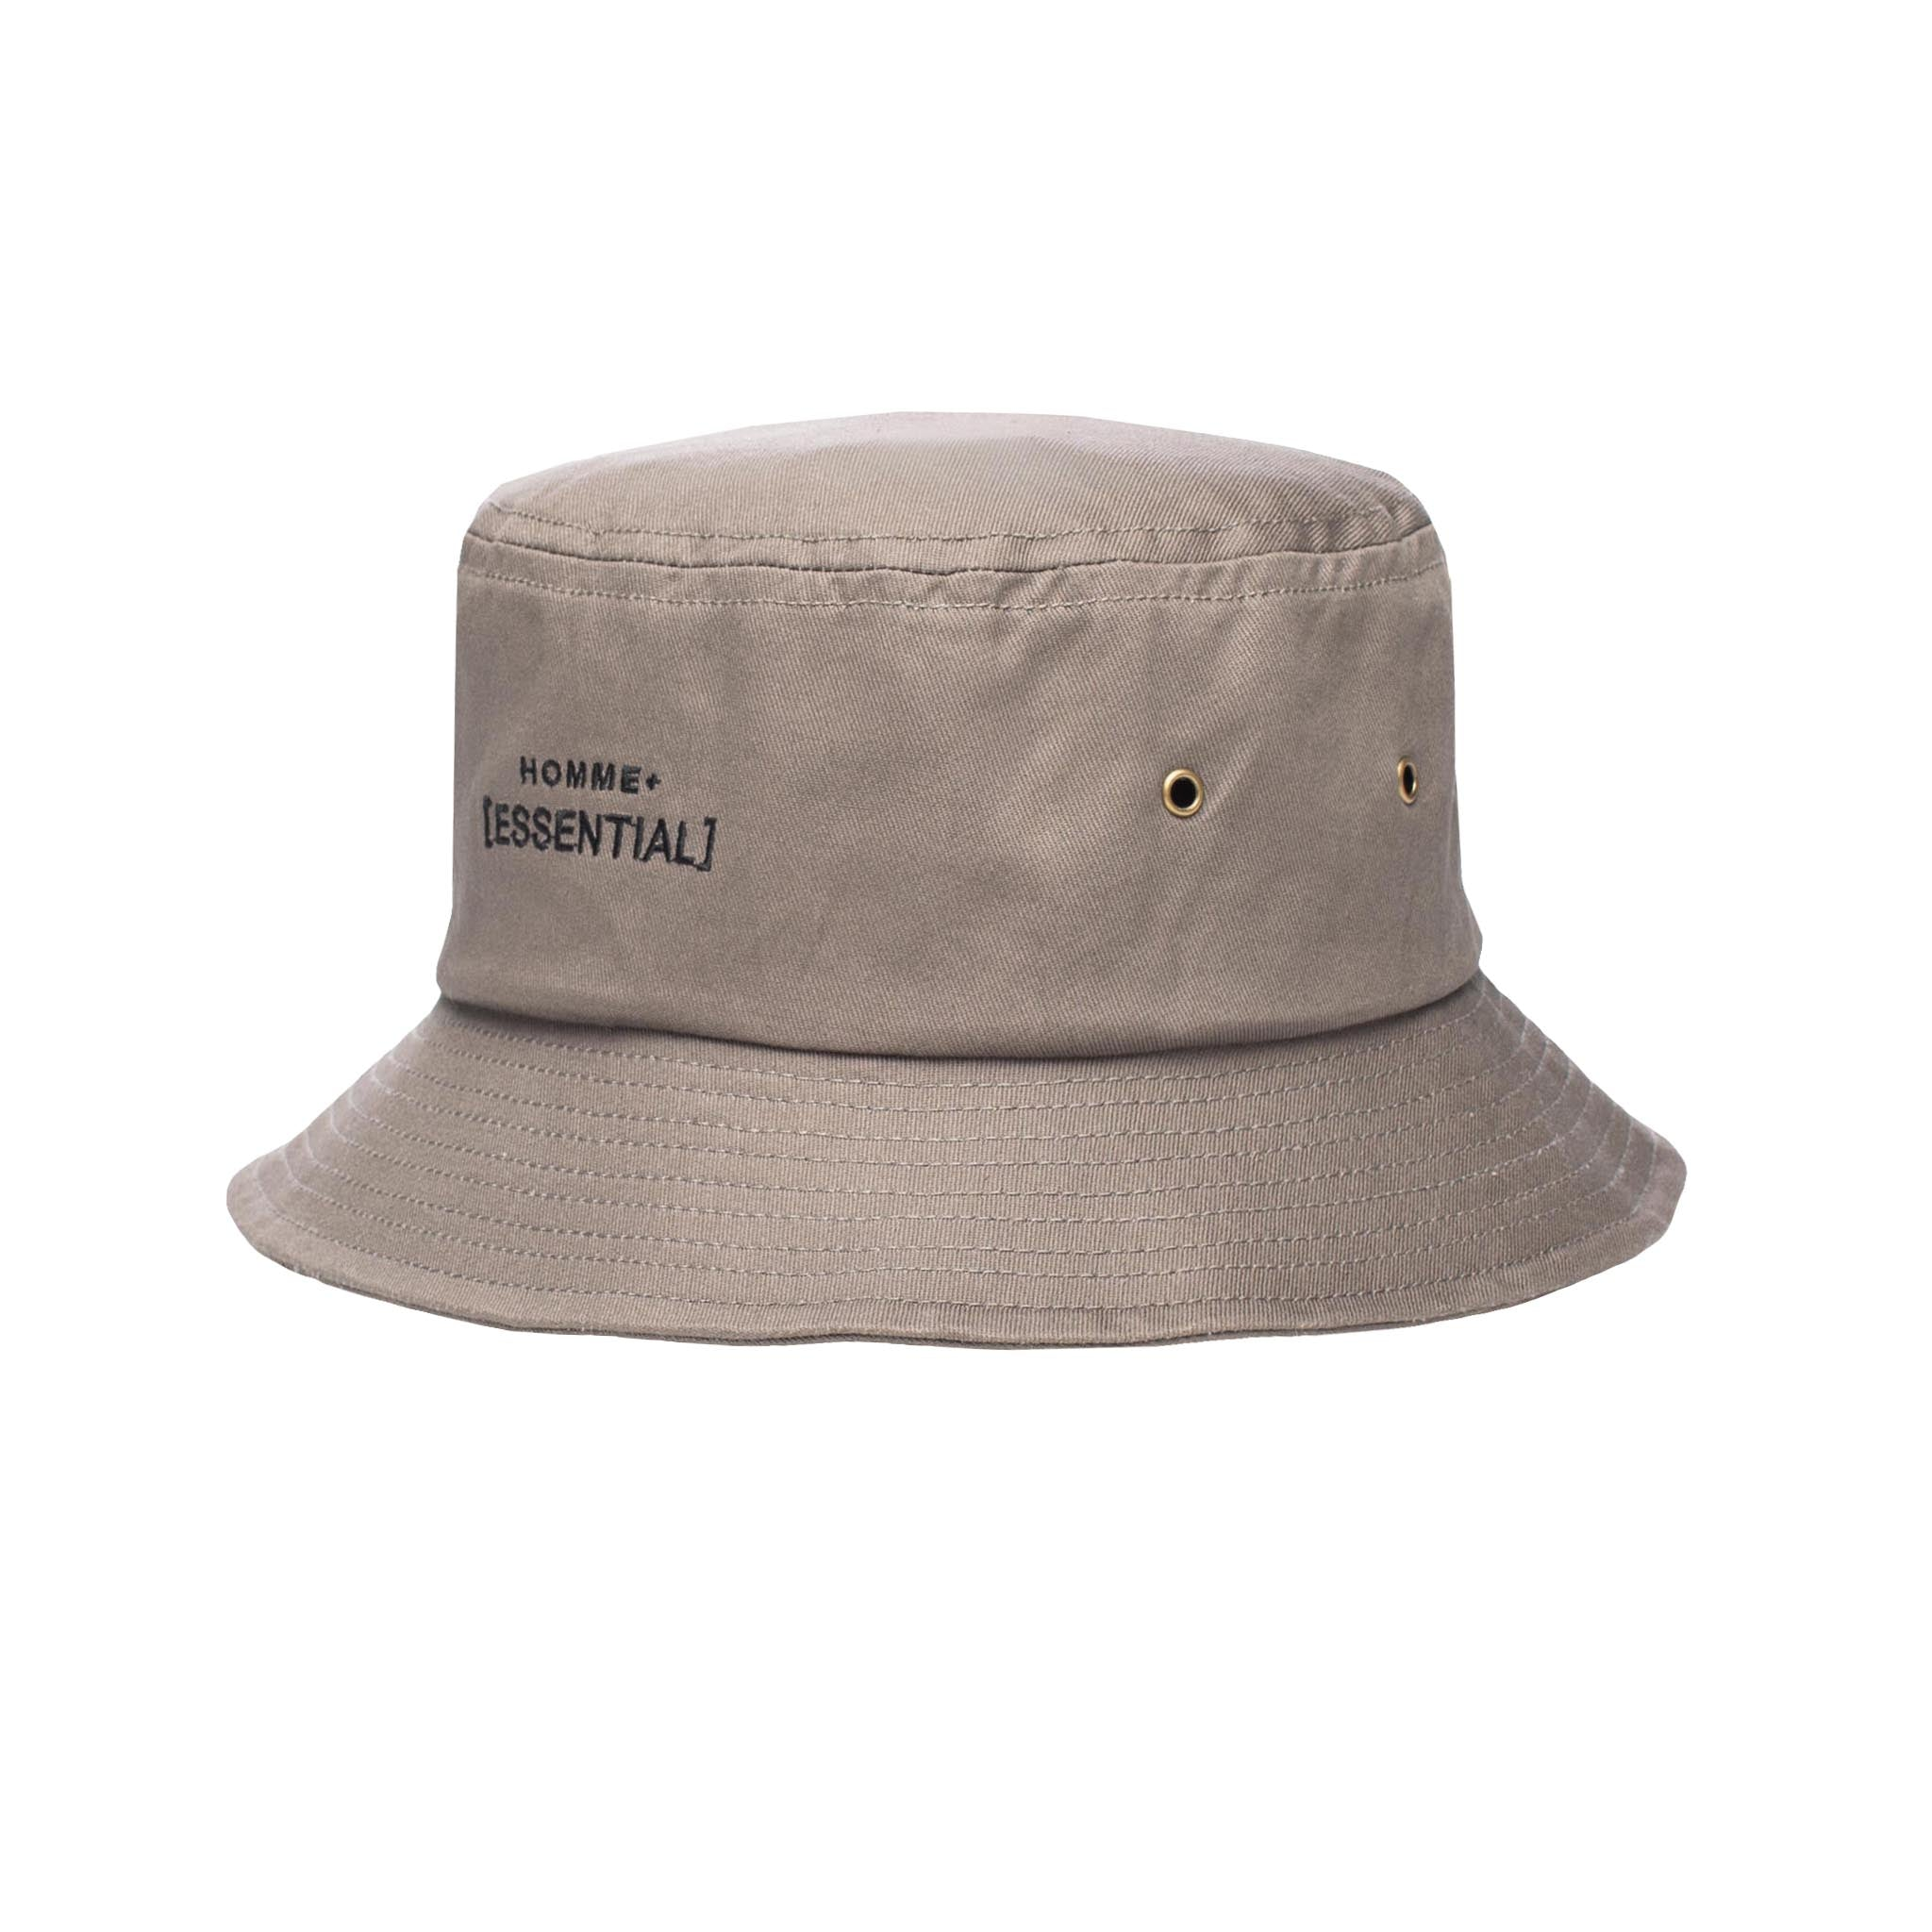 HOMME+ ESSENTIAL Bucket Hat Charcoal/Black